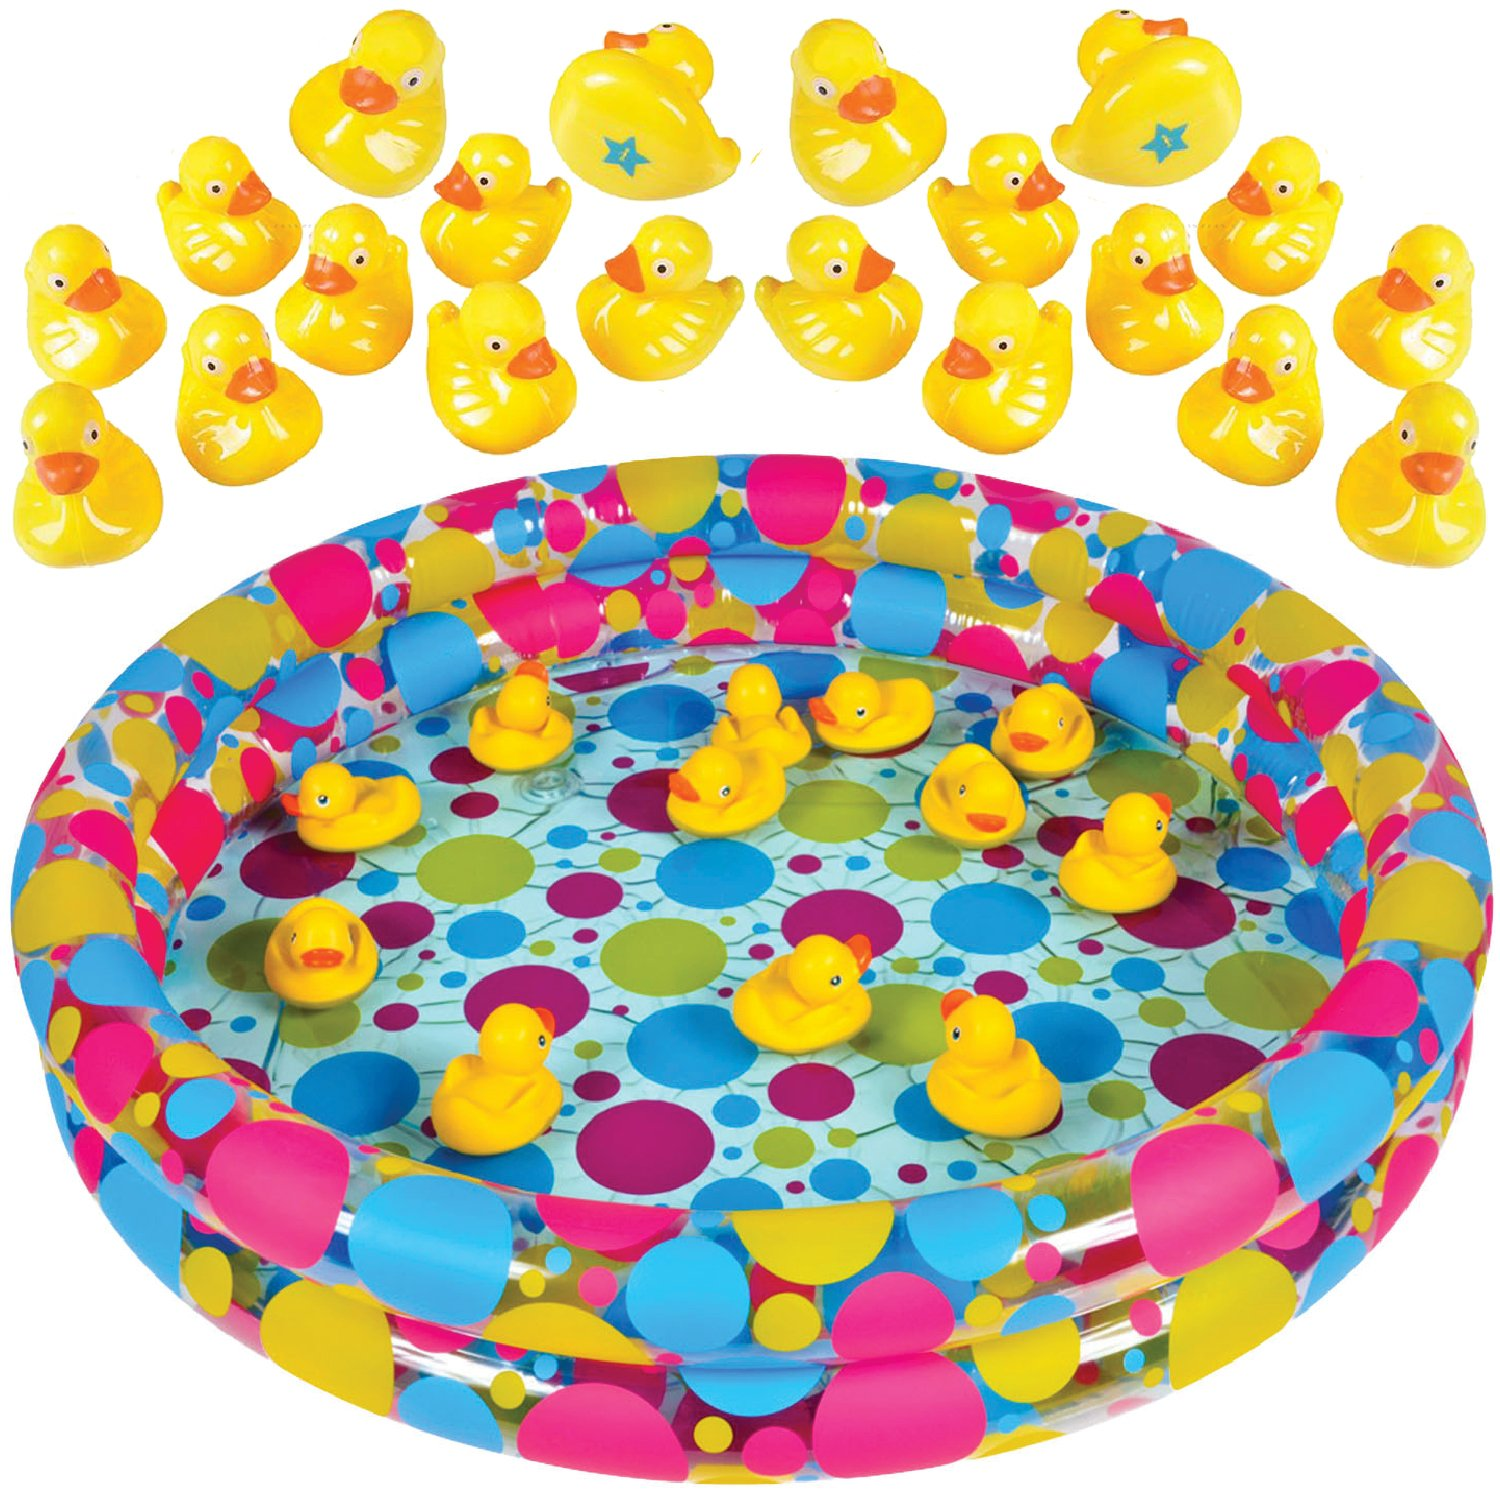 Duck Pond Matching Game for kids by GAMIE - Includes 20 Plastic Ducks with number & shapes And 3' x 6 Inflatable Pool - Fun Memory Game - Water Outdoor Game for Children, Preschoolers, Birthday Party by GamieTM